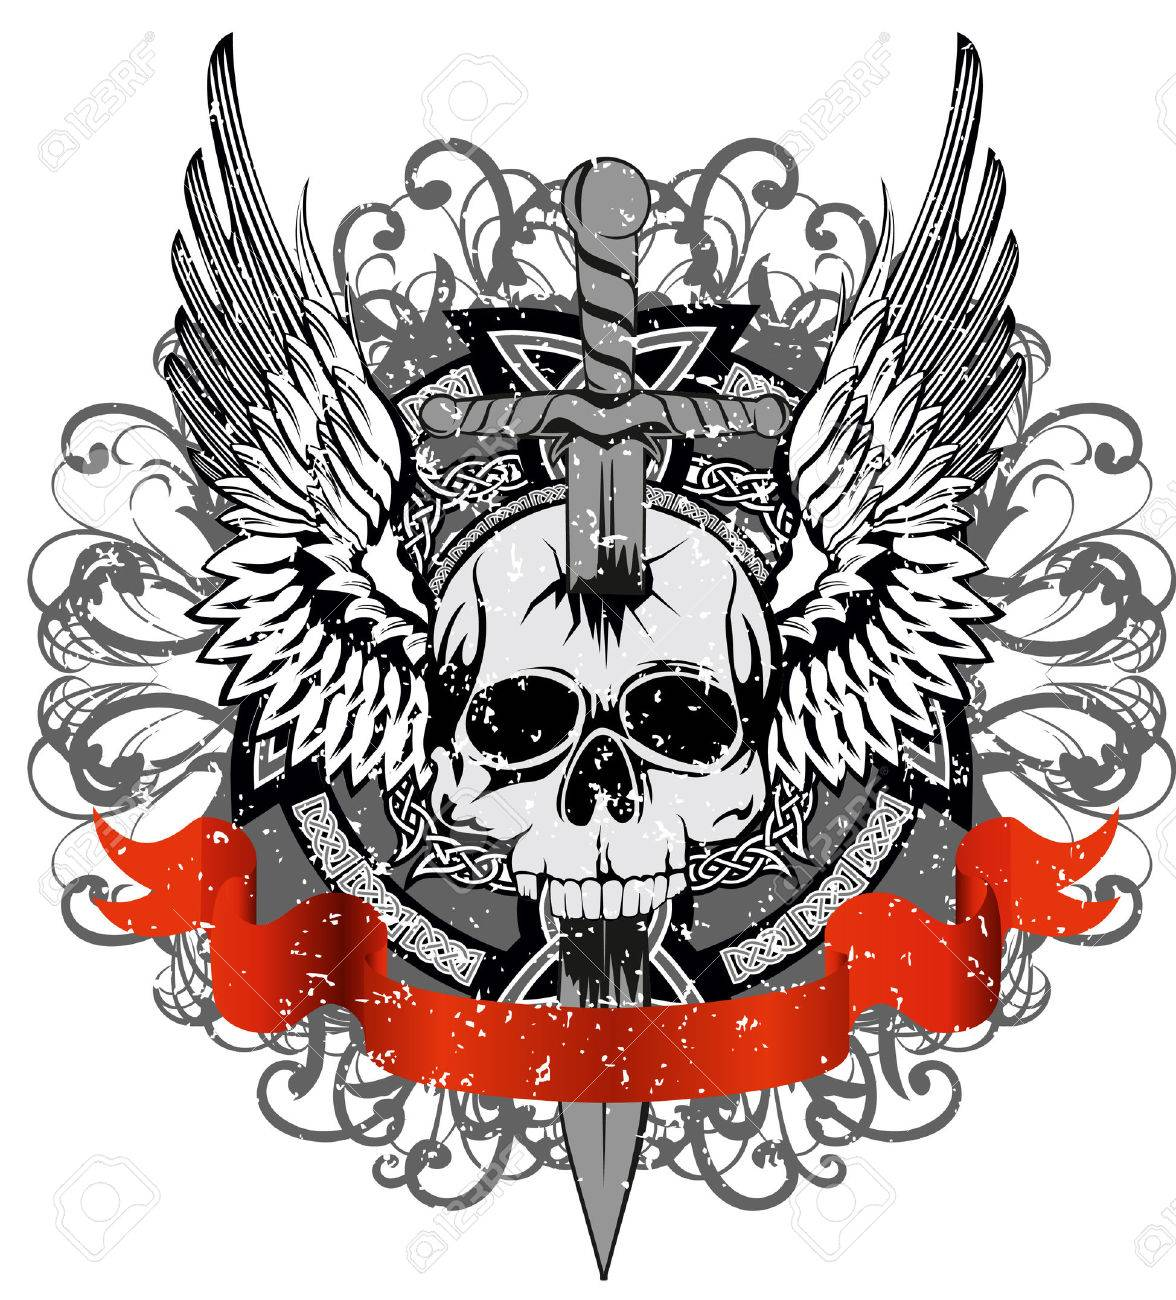 design for T-short skull punched by sword against patterns Stock Vector - 8850498